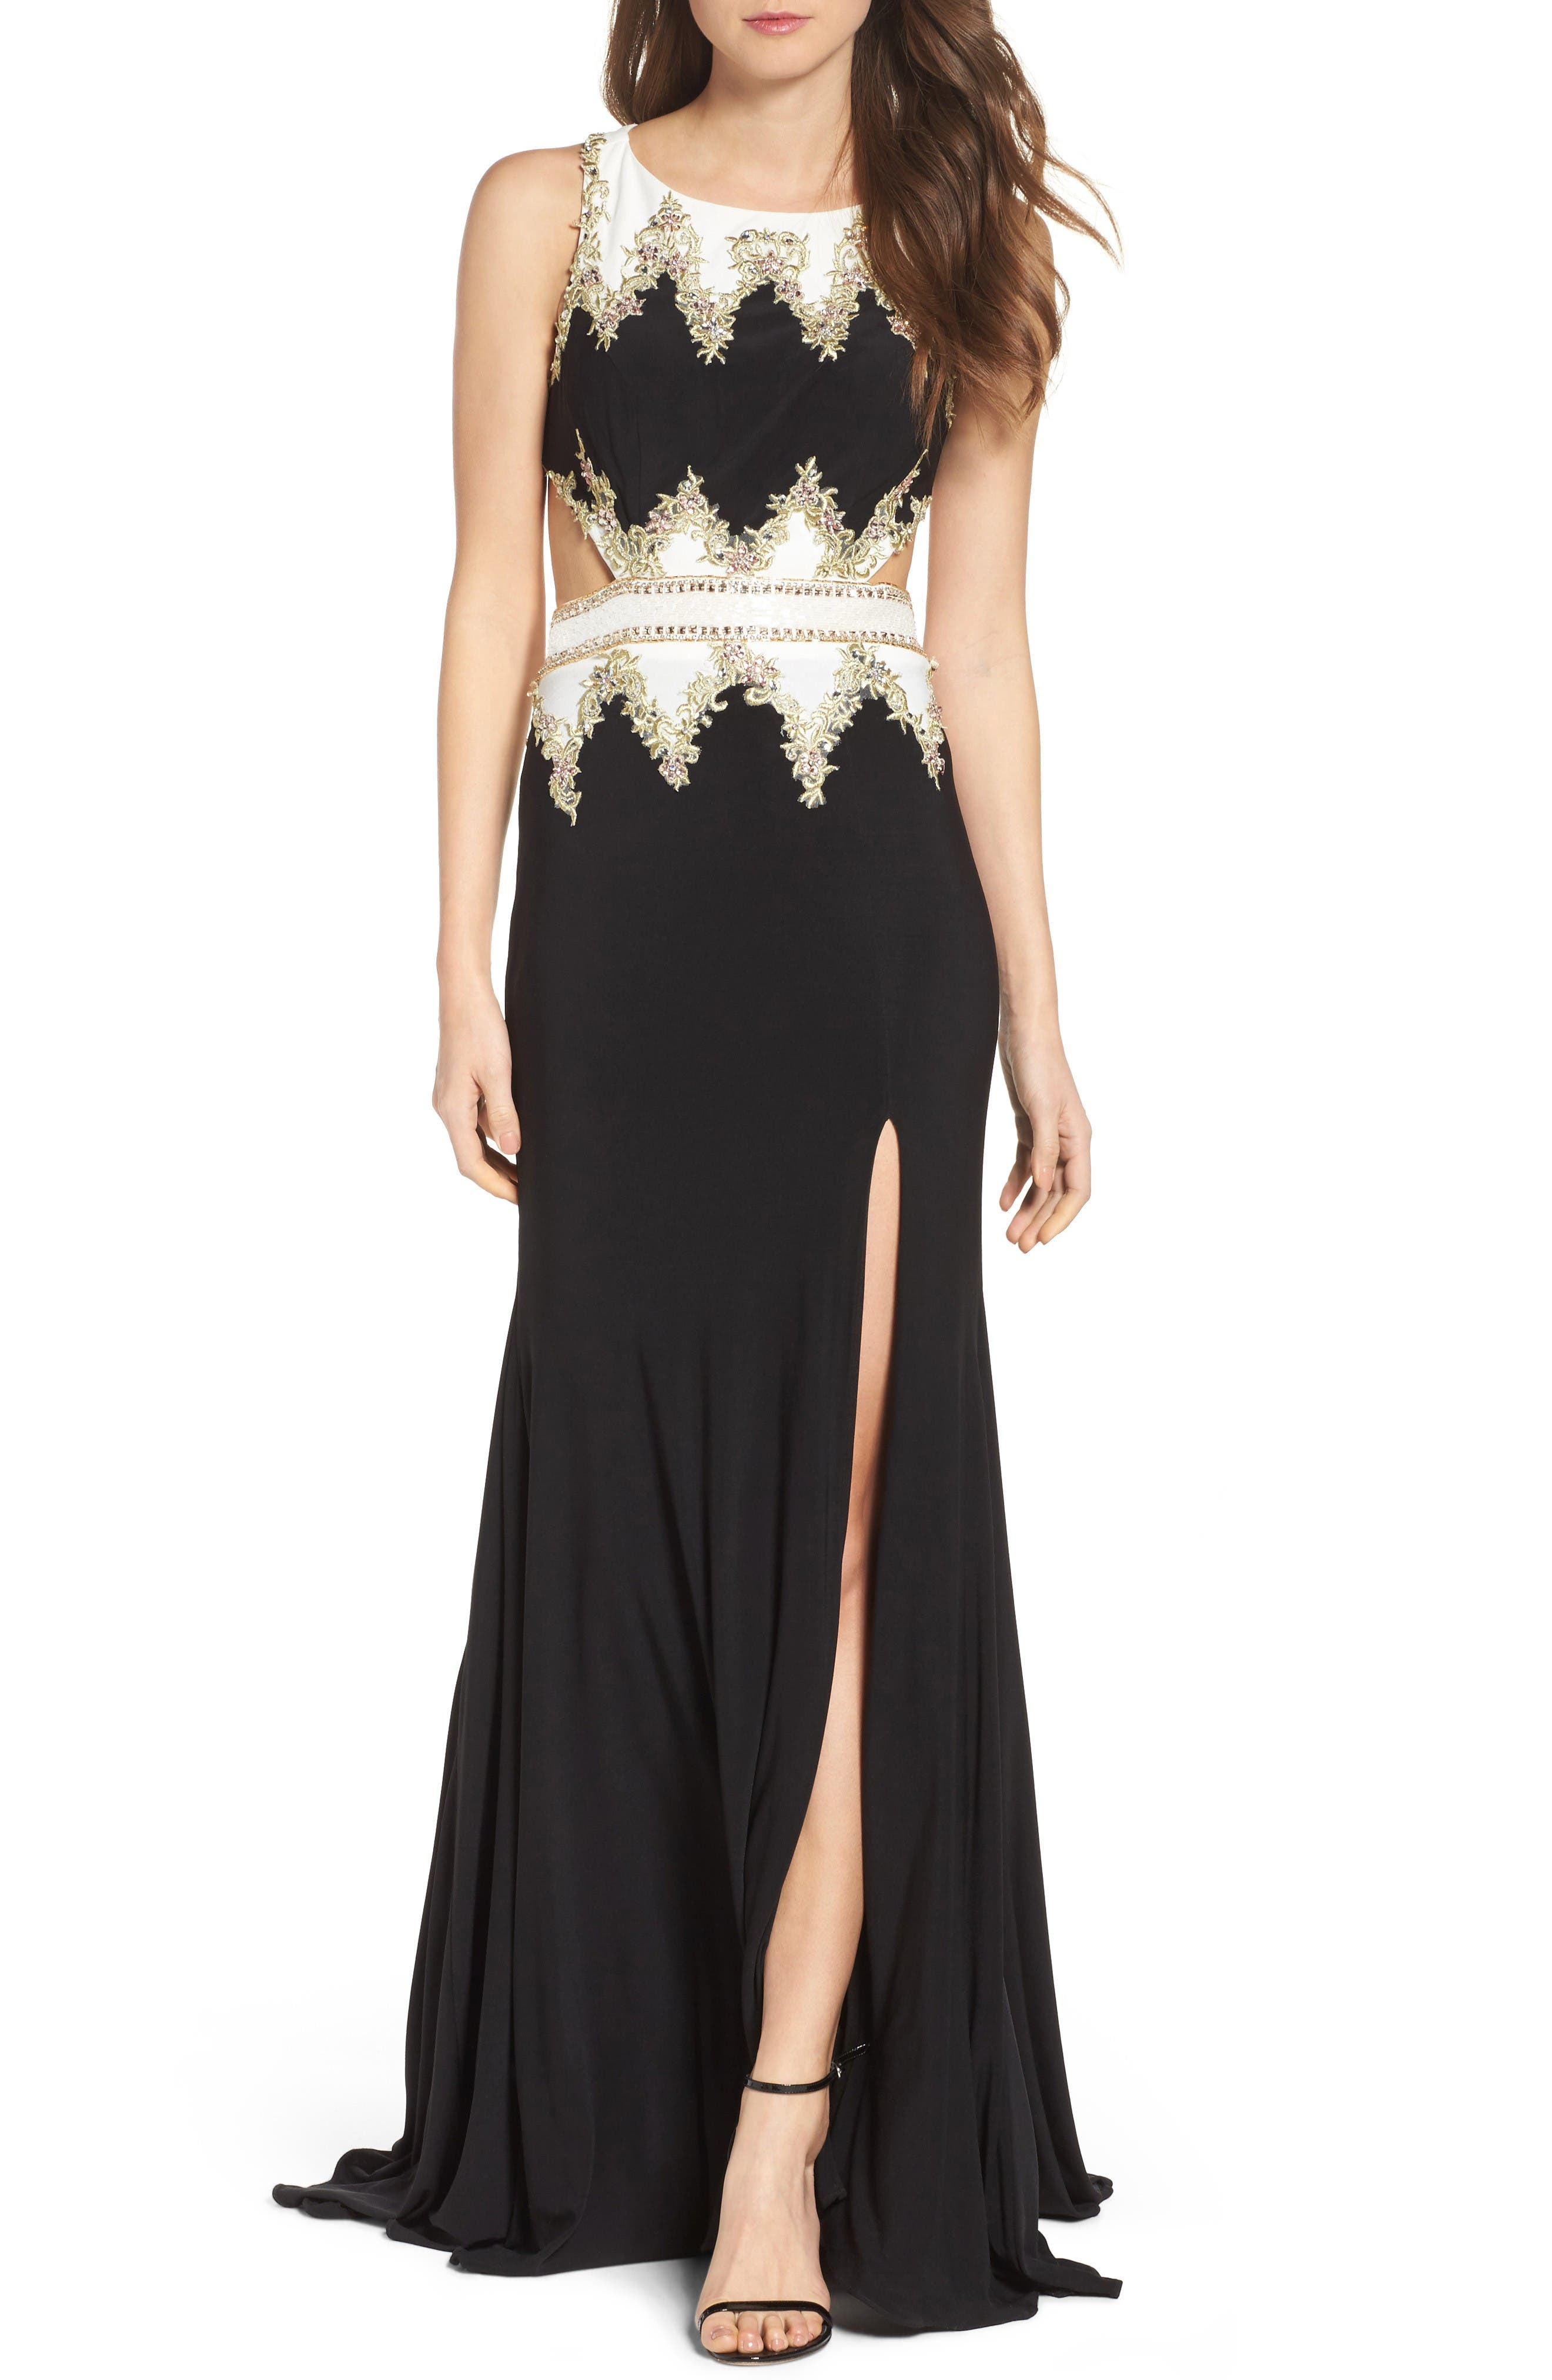 Embellished Cutout Jersey Gown,                             Main thumbnail 1, color,                             Black/ White